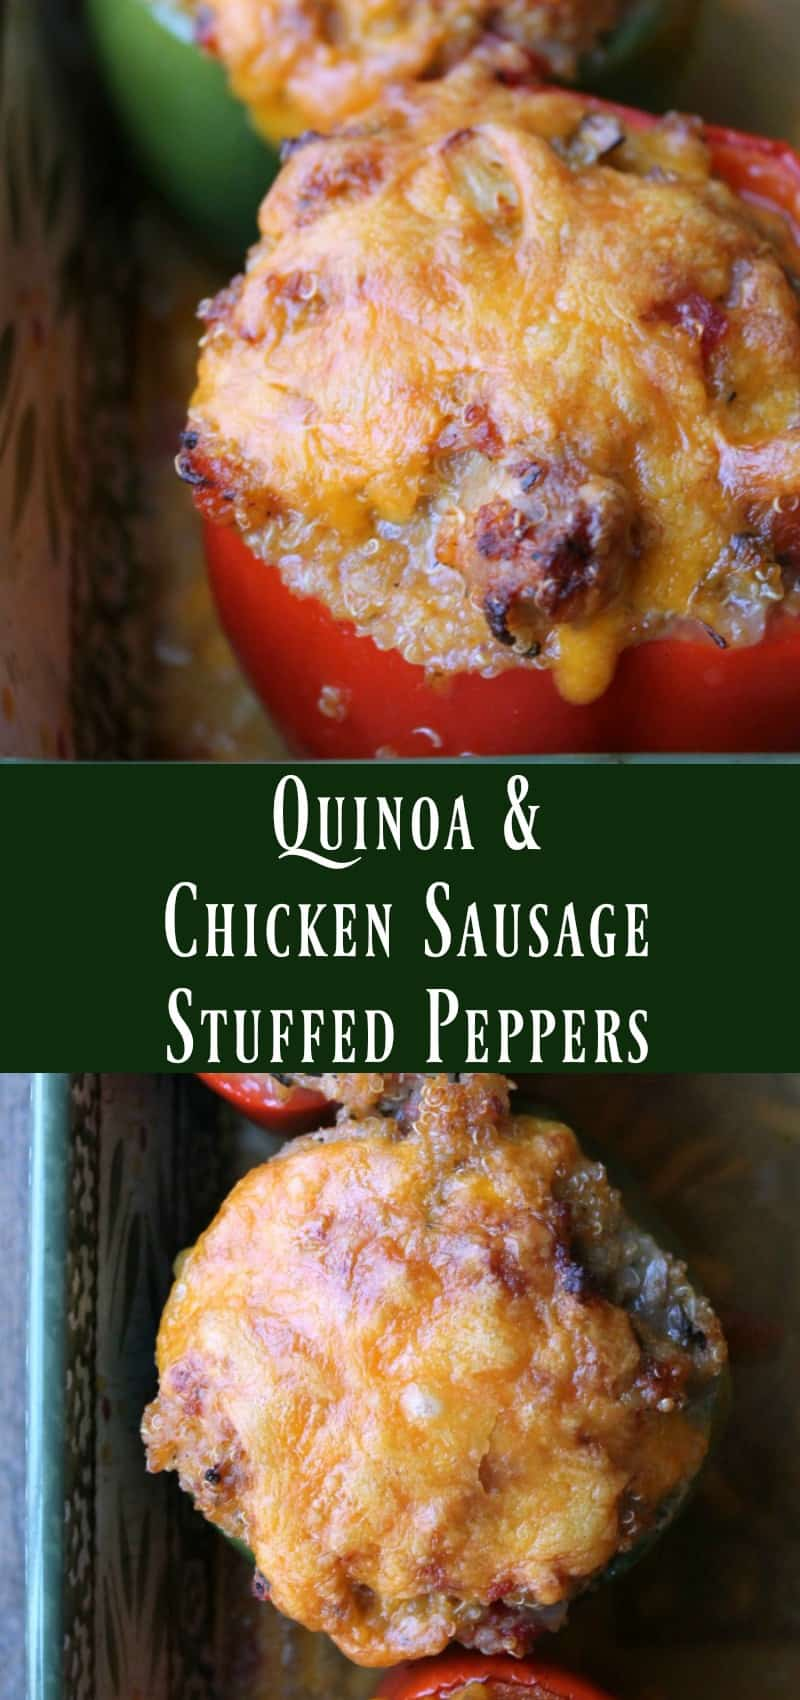 Quinoa and Chicken Sausage Stuffed Peppers. Healthy Make-ahead Dinner recipes